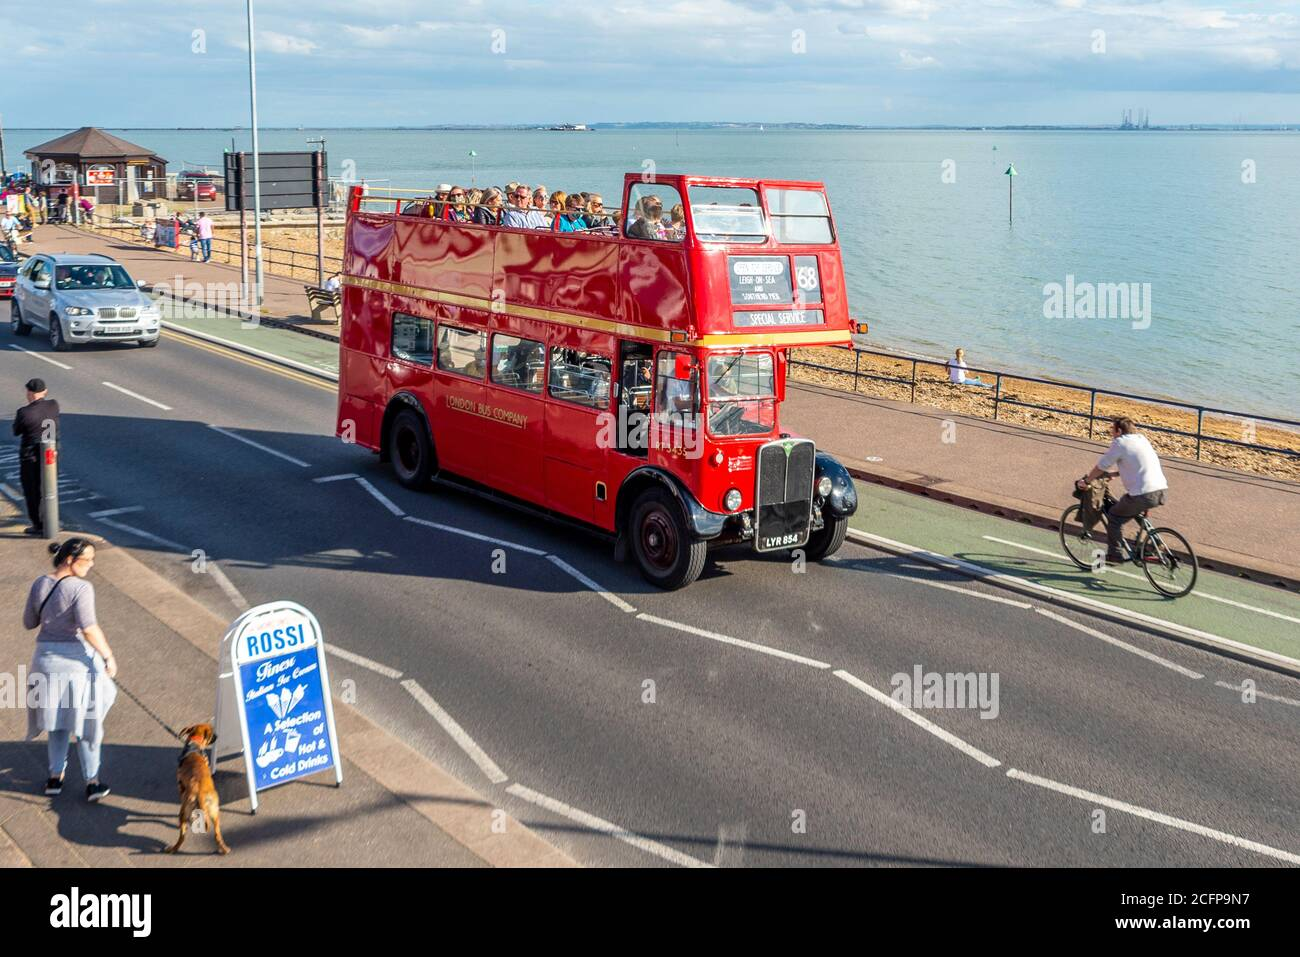 AEC Regent III bus on Ensignbus Route 68 service along the seafront at Southend on Sea, Essex, UK. Special open top bus extravaganza event Stock Photo